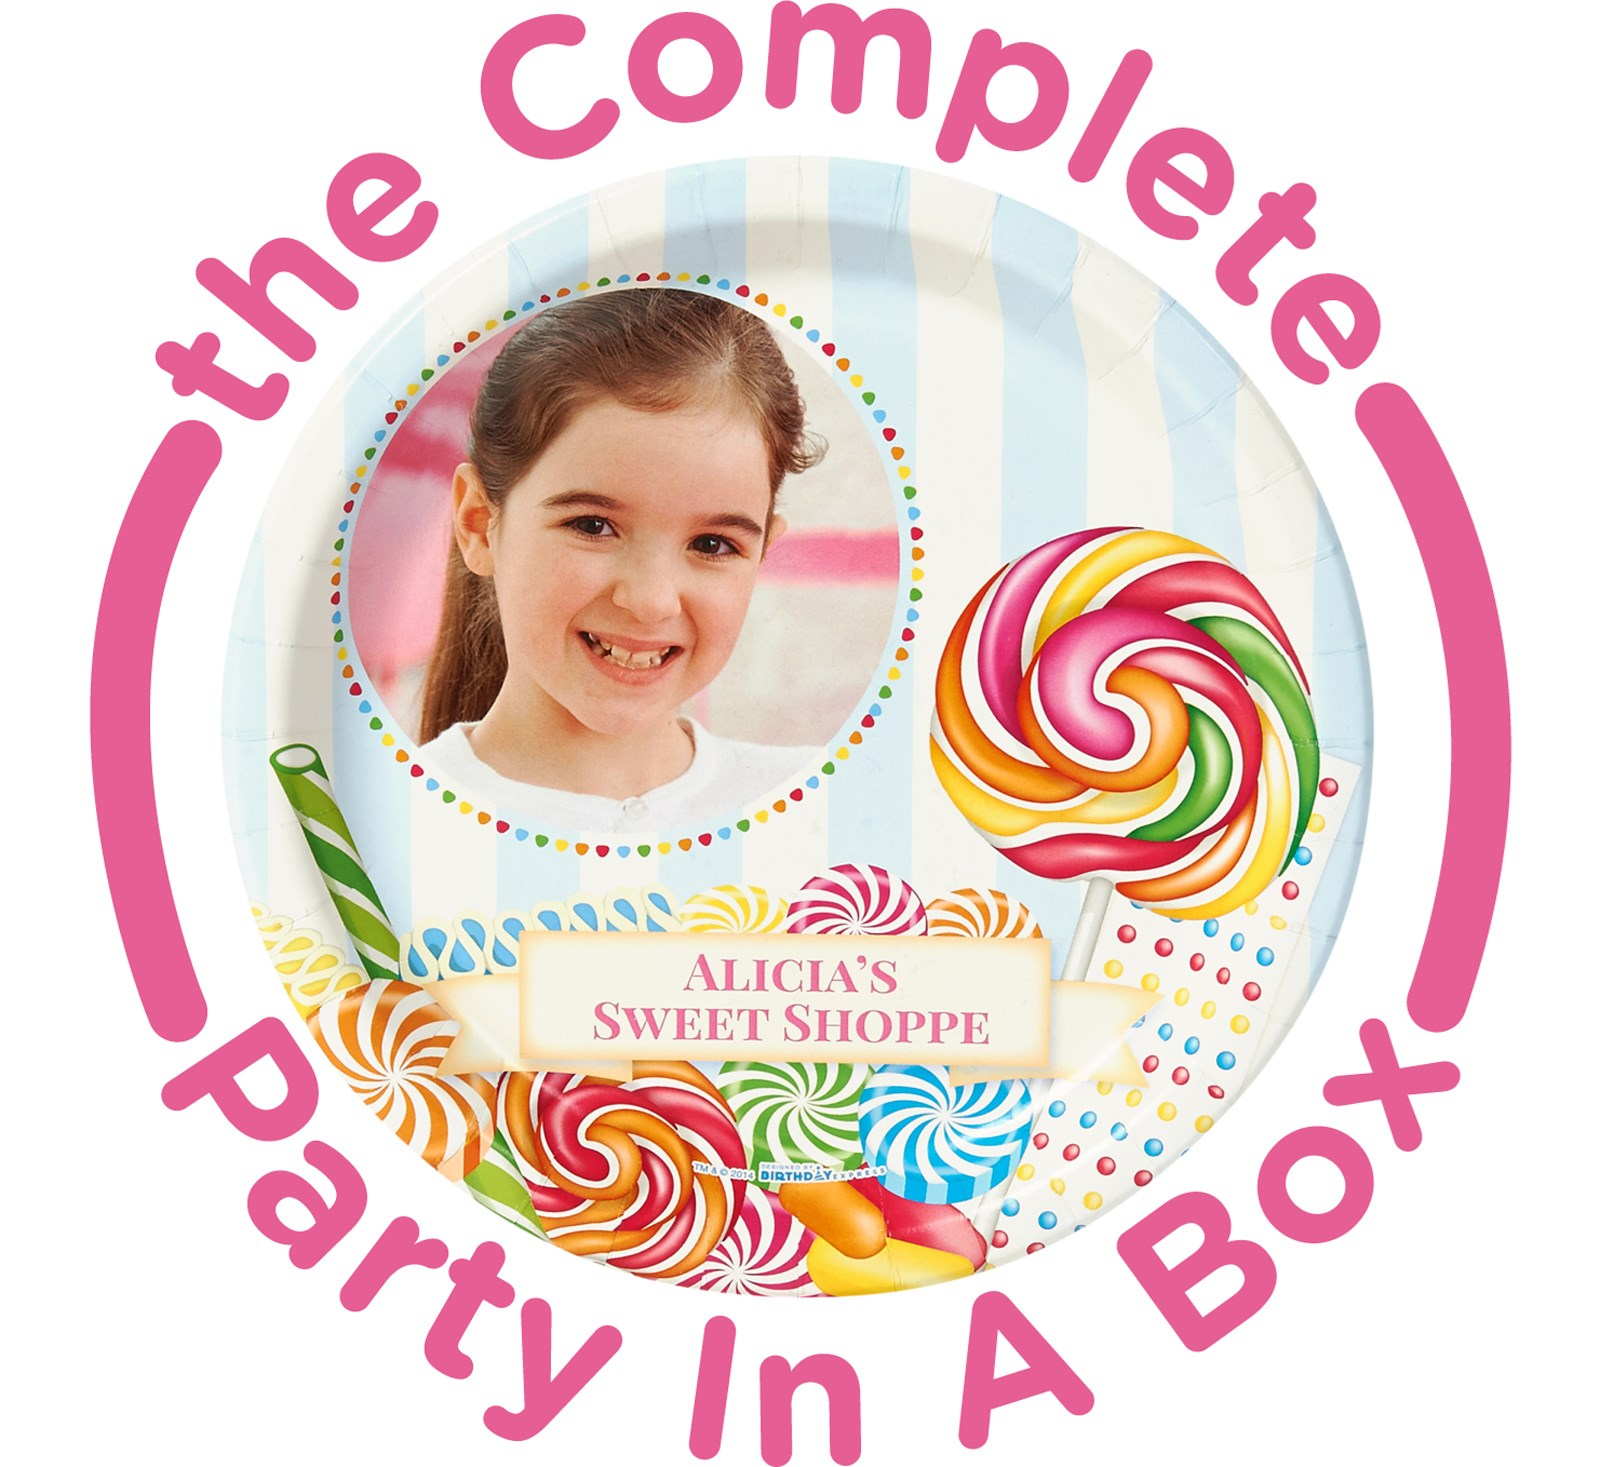 Candy Shoppe Personalized Party in a Box - Deluxe with Favors - 8 Guests